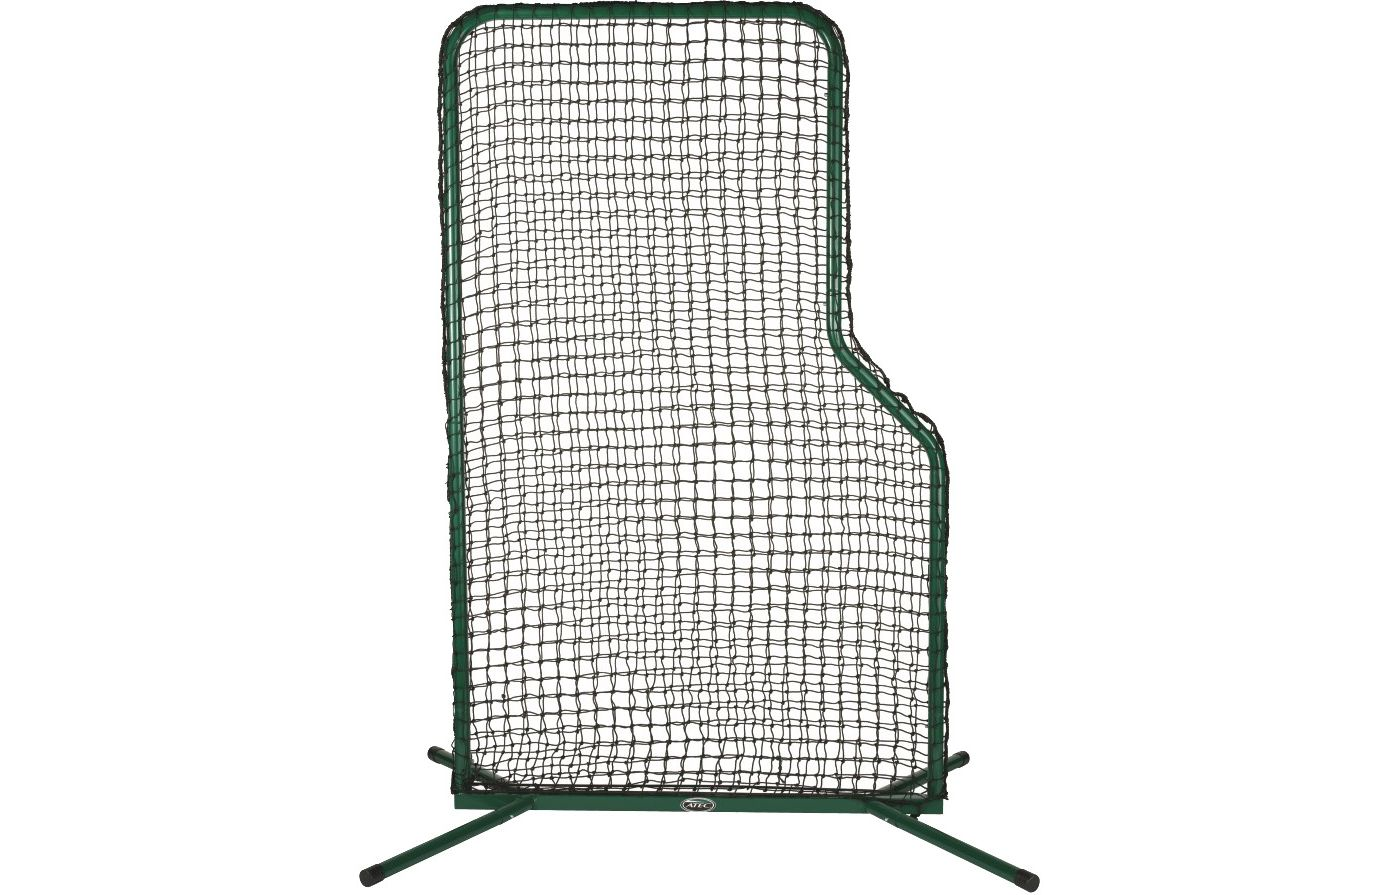 ATEC Portable Pitcher's L-Screen w/ Carry Bag